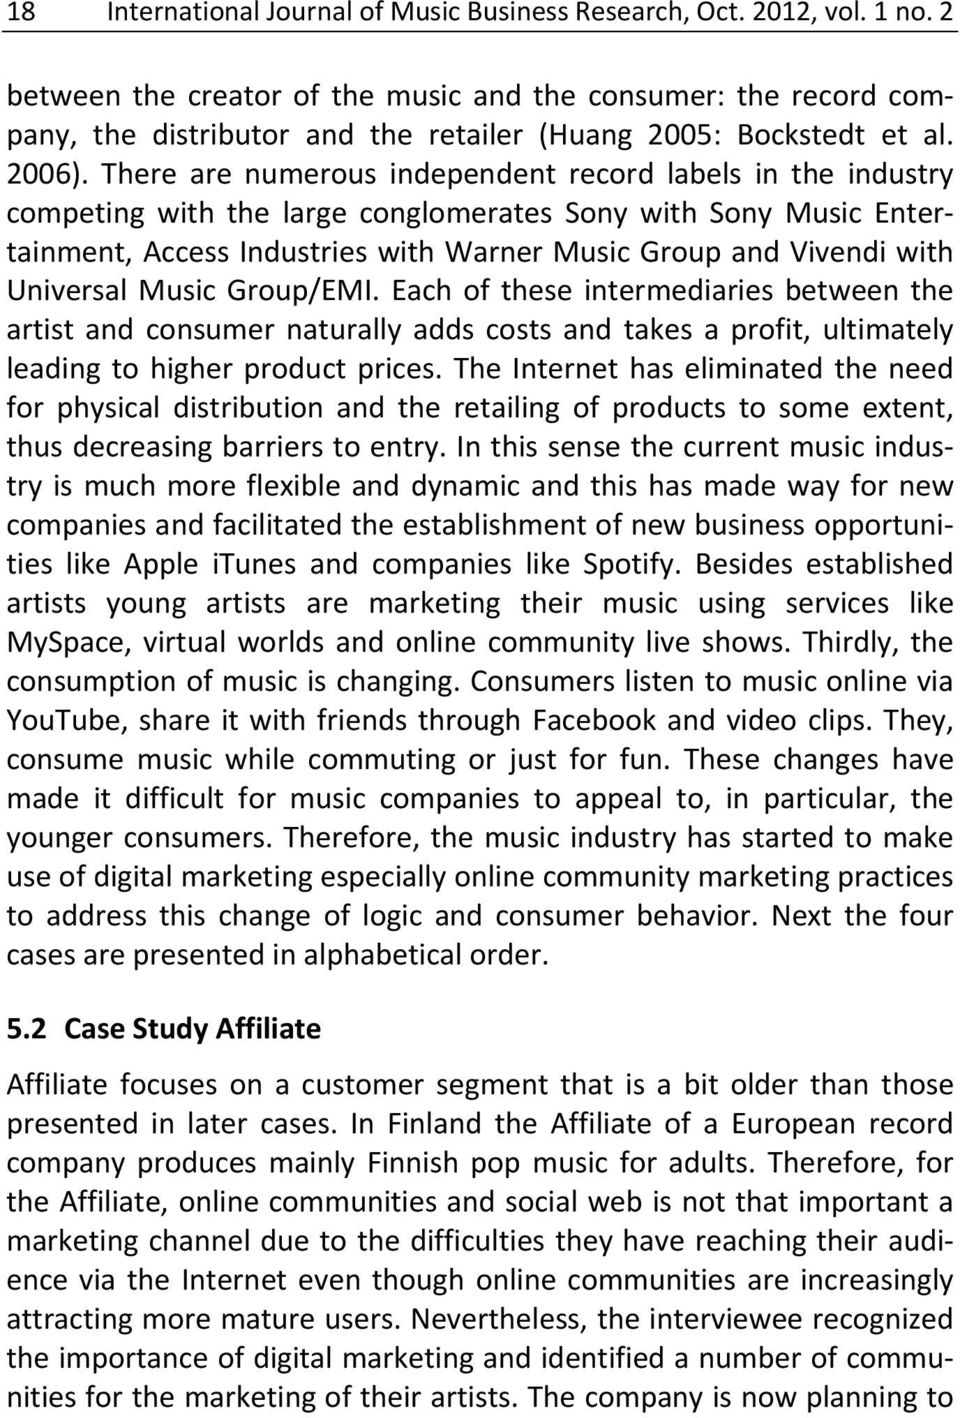 There are numerous independent record labels in the industry competing with the large conglomerates Sony with Sony Music Entertainment, Access Industries with Warner Music Group and Vivendi with